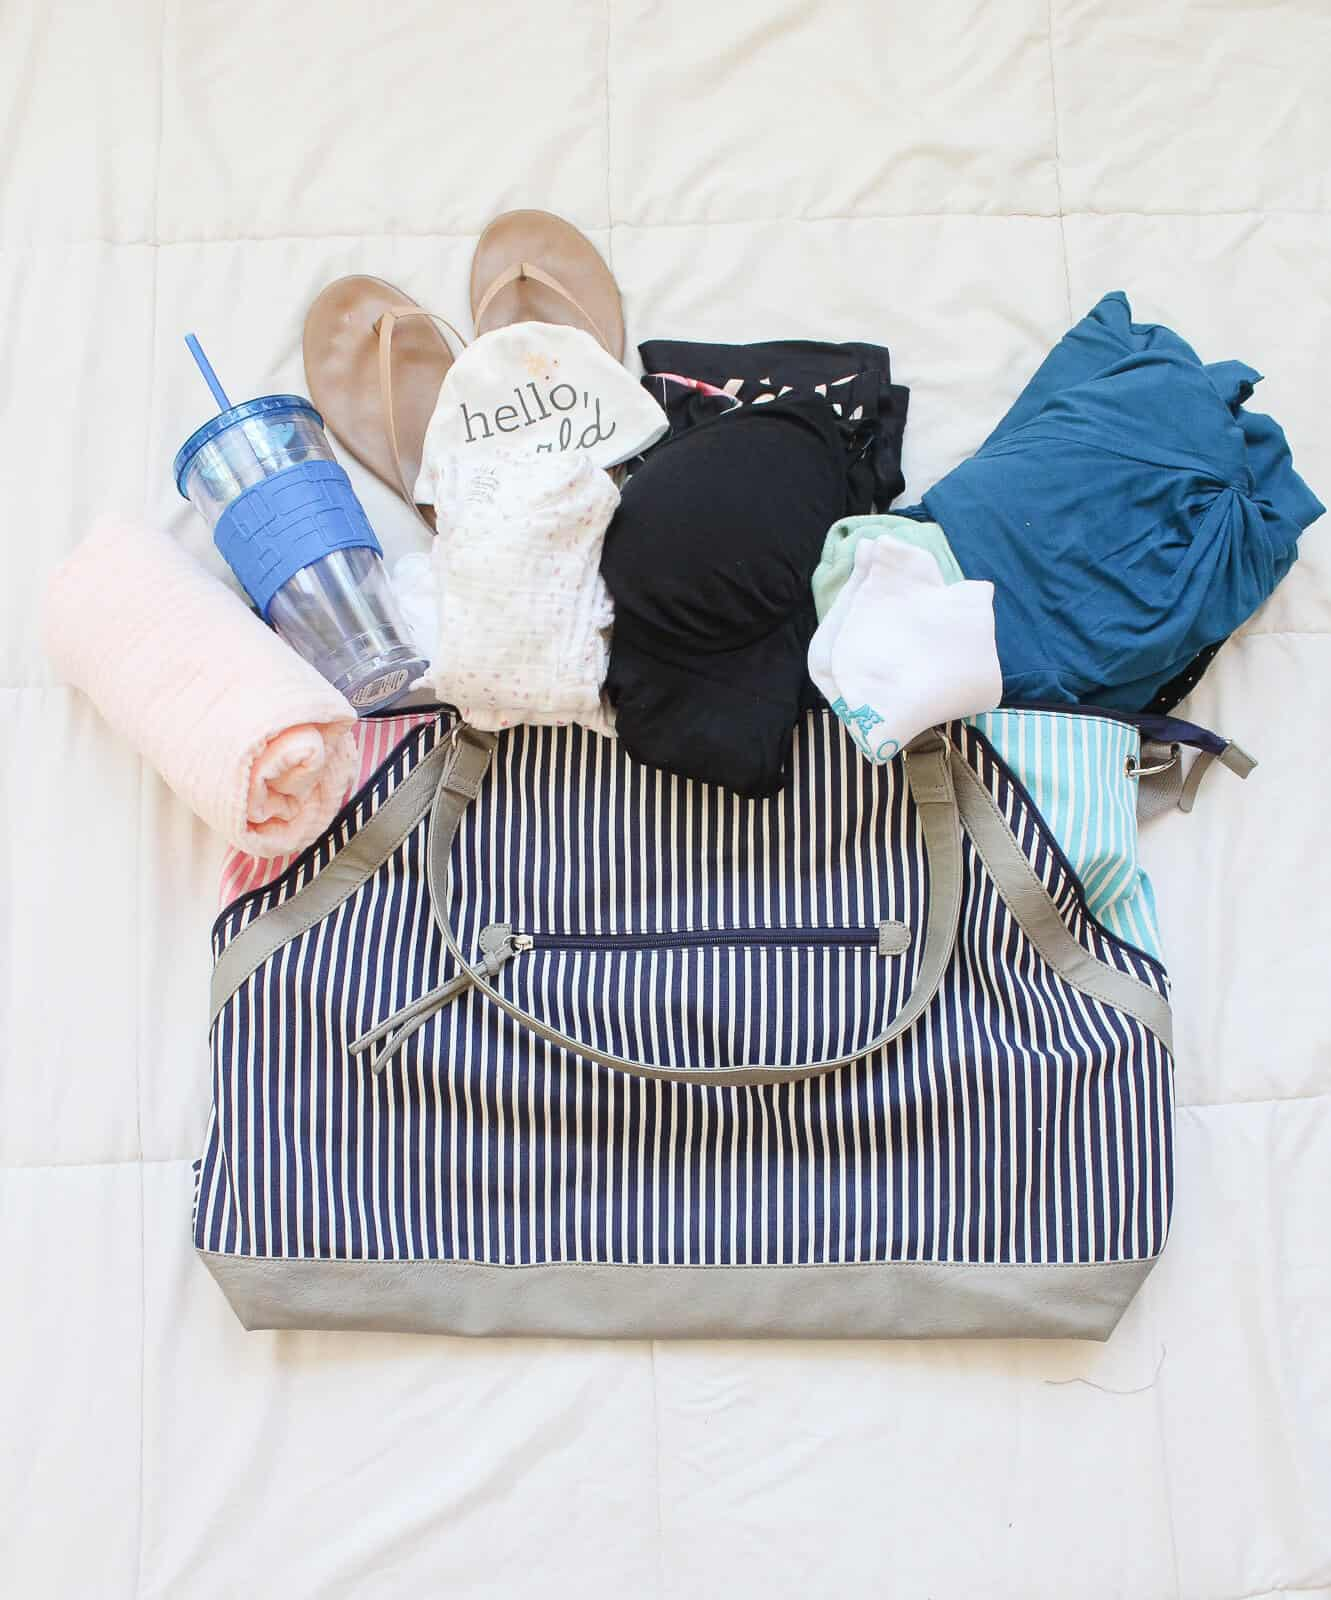 Hospital bag with items for expectant mothers.